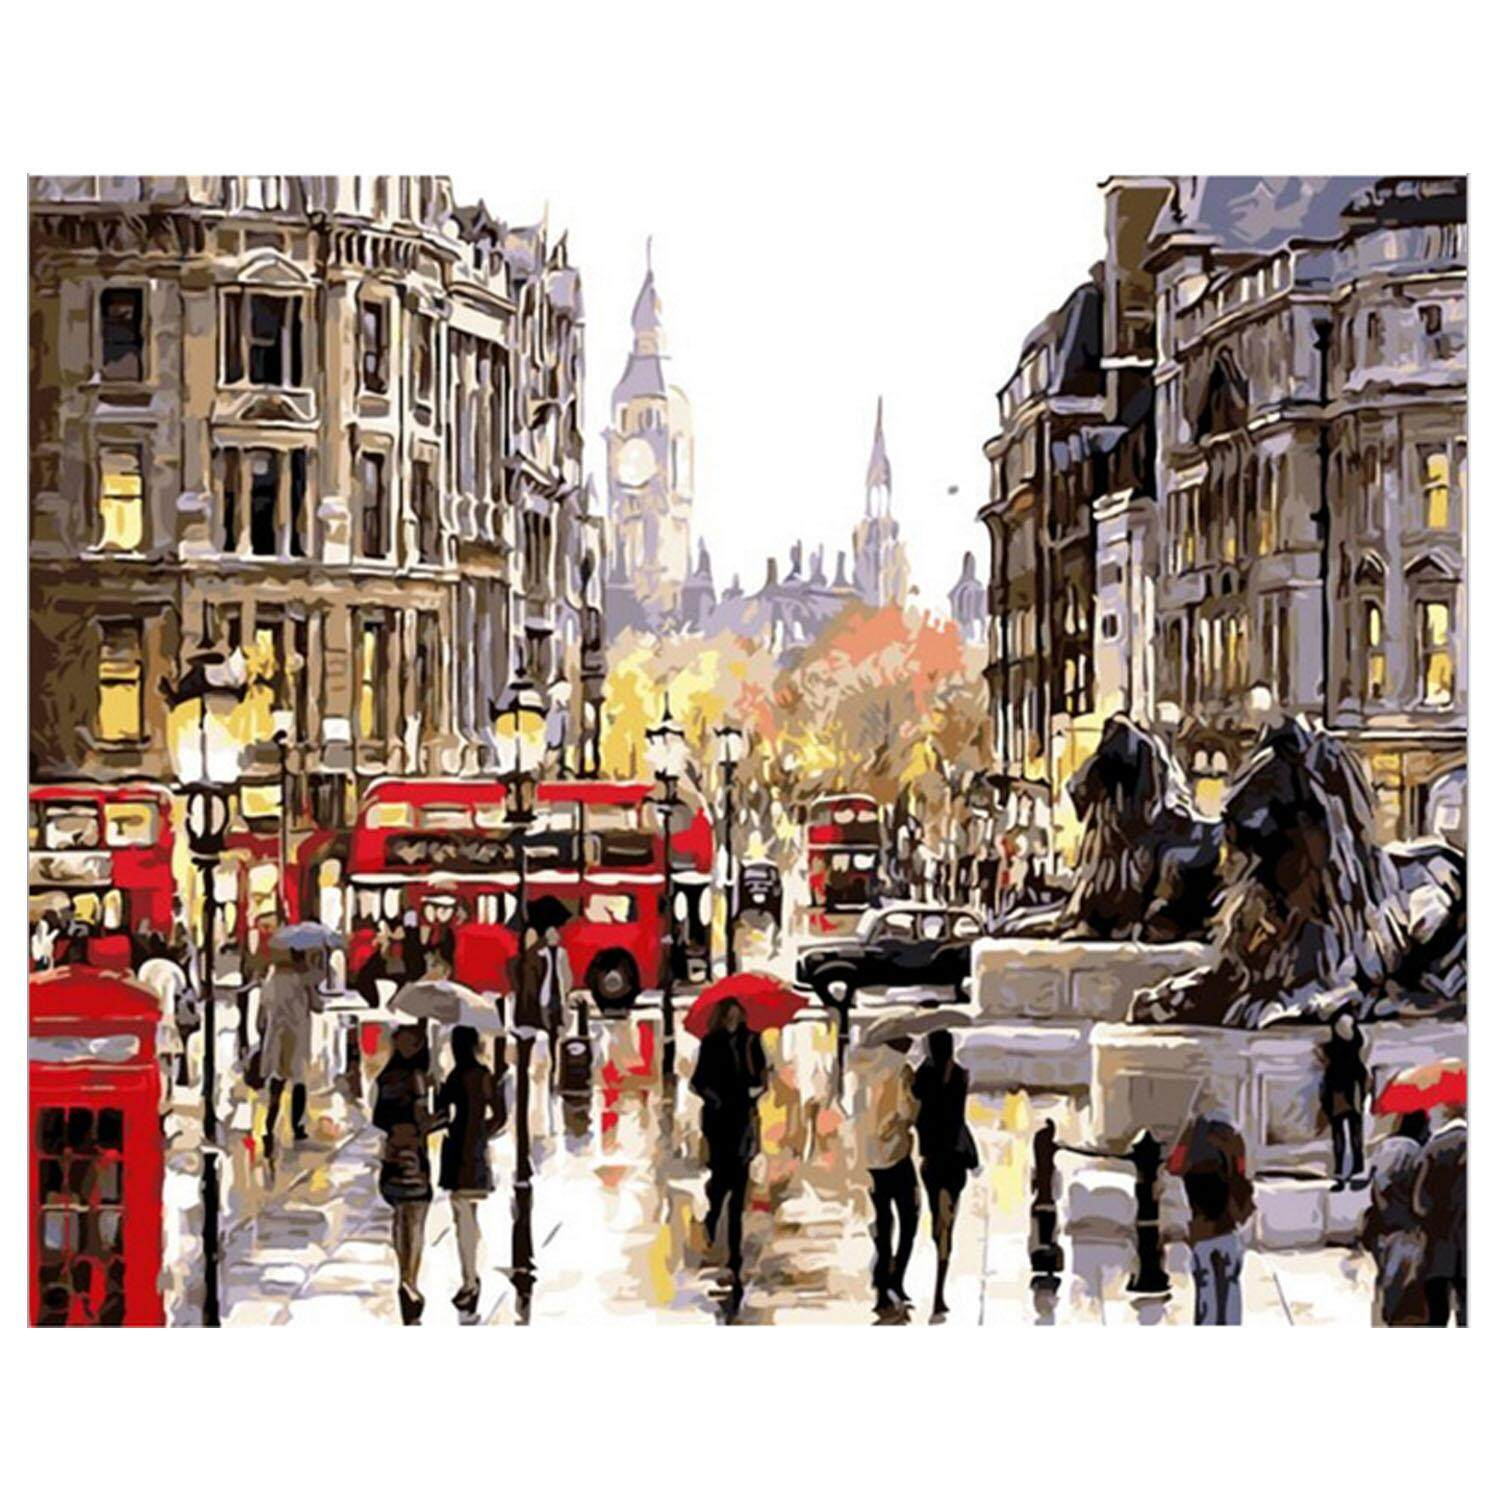 Digital DIY Scenery Oil Painting Coloring By Numbers On Linen Canvas Wall Art Decoration 40 x 50cm